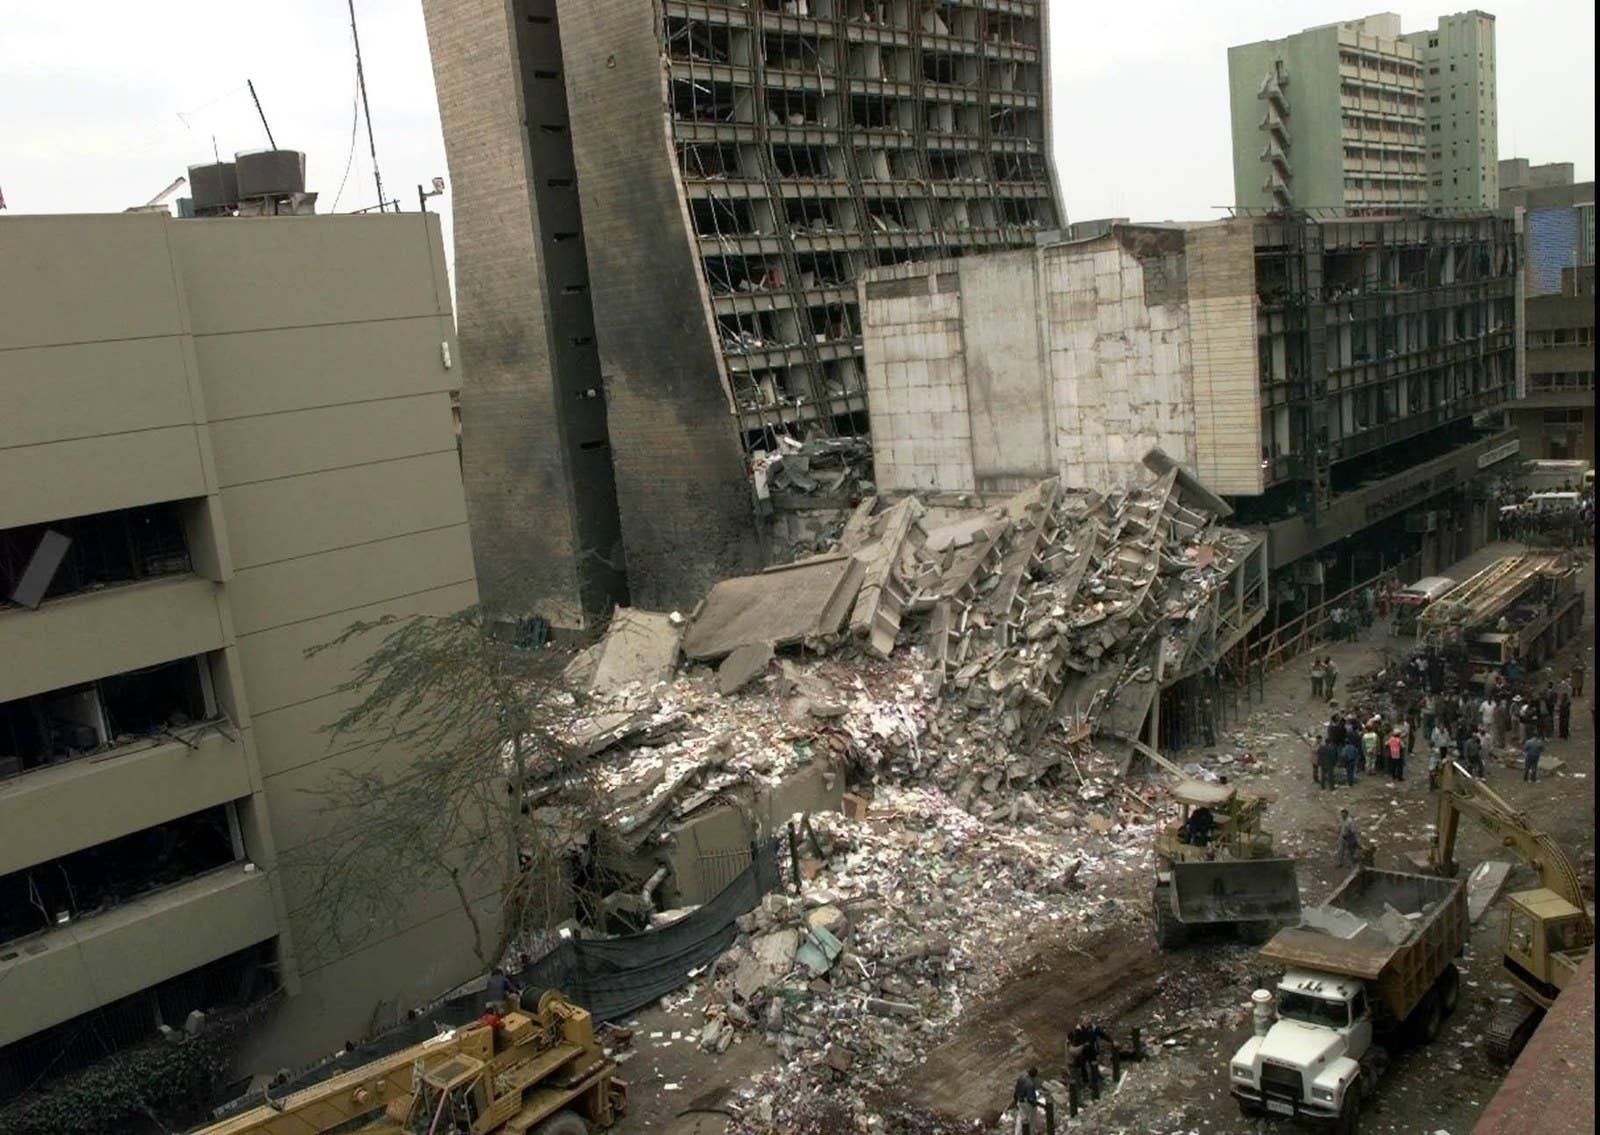 The United States Embassy, left, and other damaged buildings in downtown Nairobi, Kenya, the day after the 1998 al-Qaeda bombings in Kenya and Tanzania.